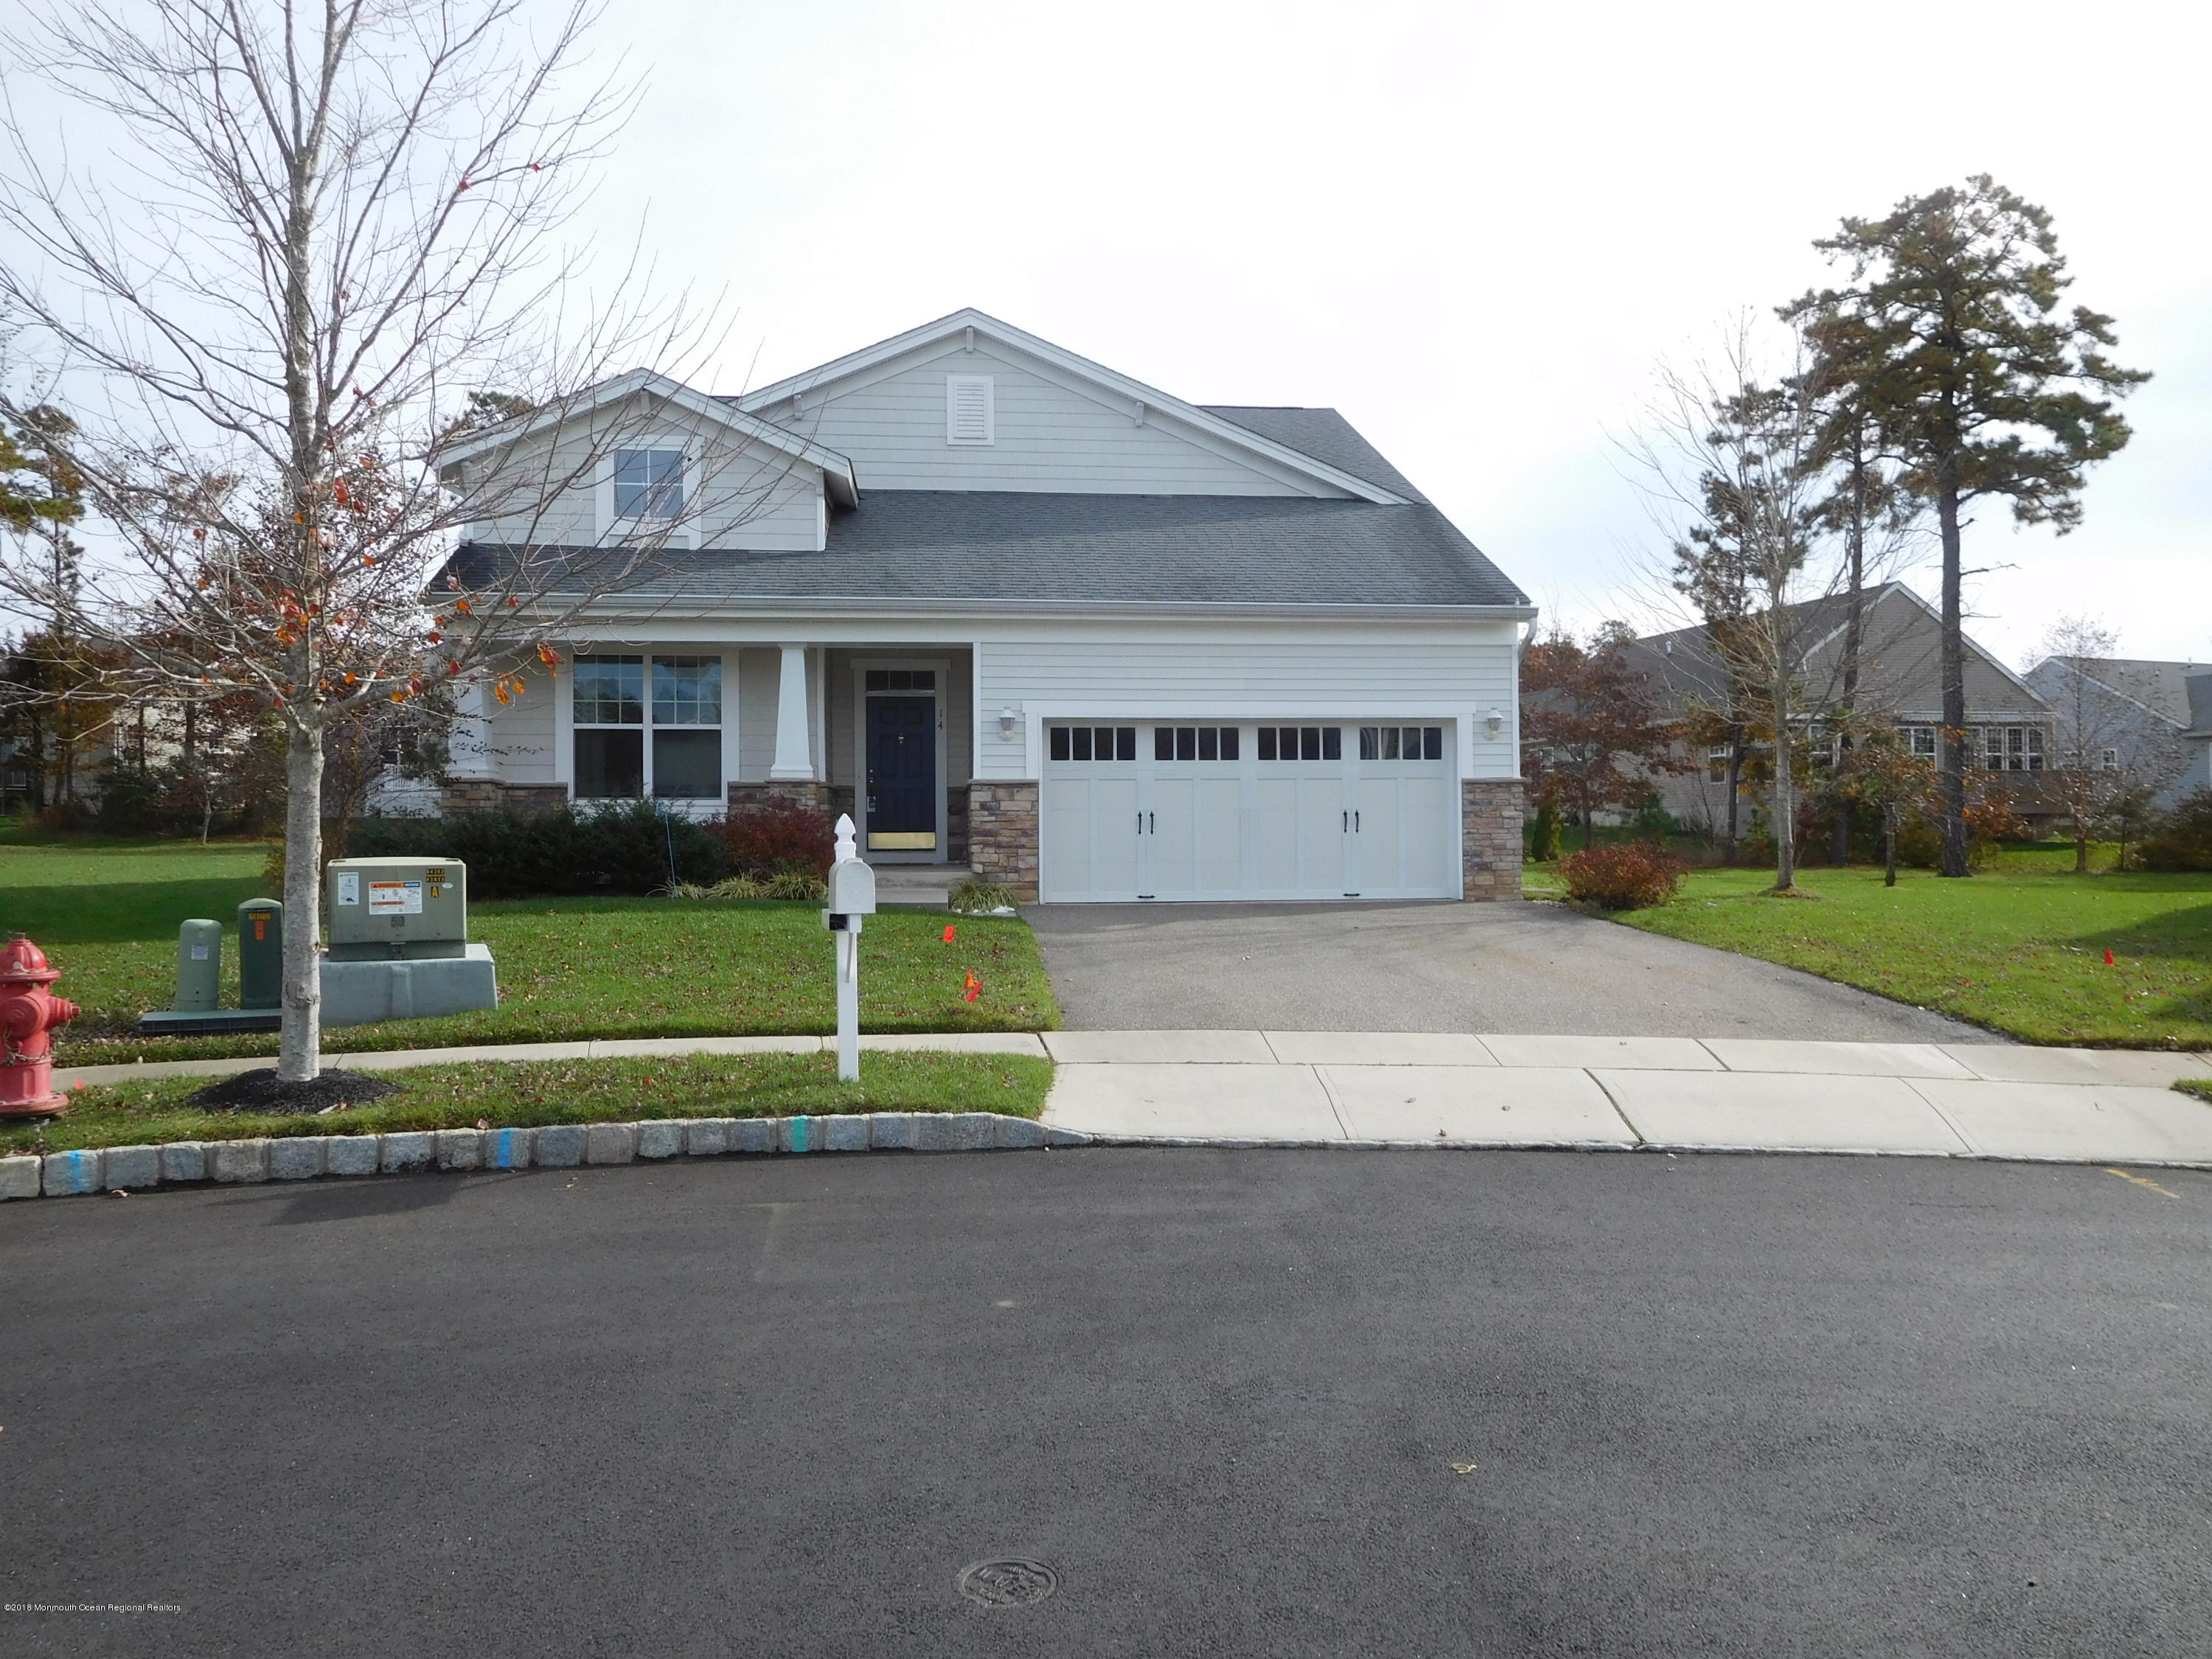 14 CHARLESTON COURT, LITTLE EGG HARBOR, NJ 08087